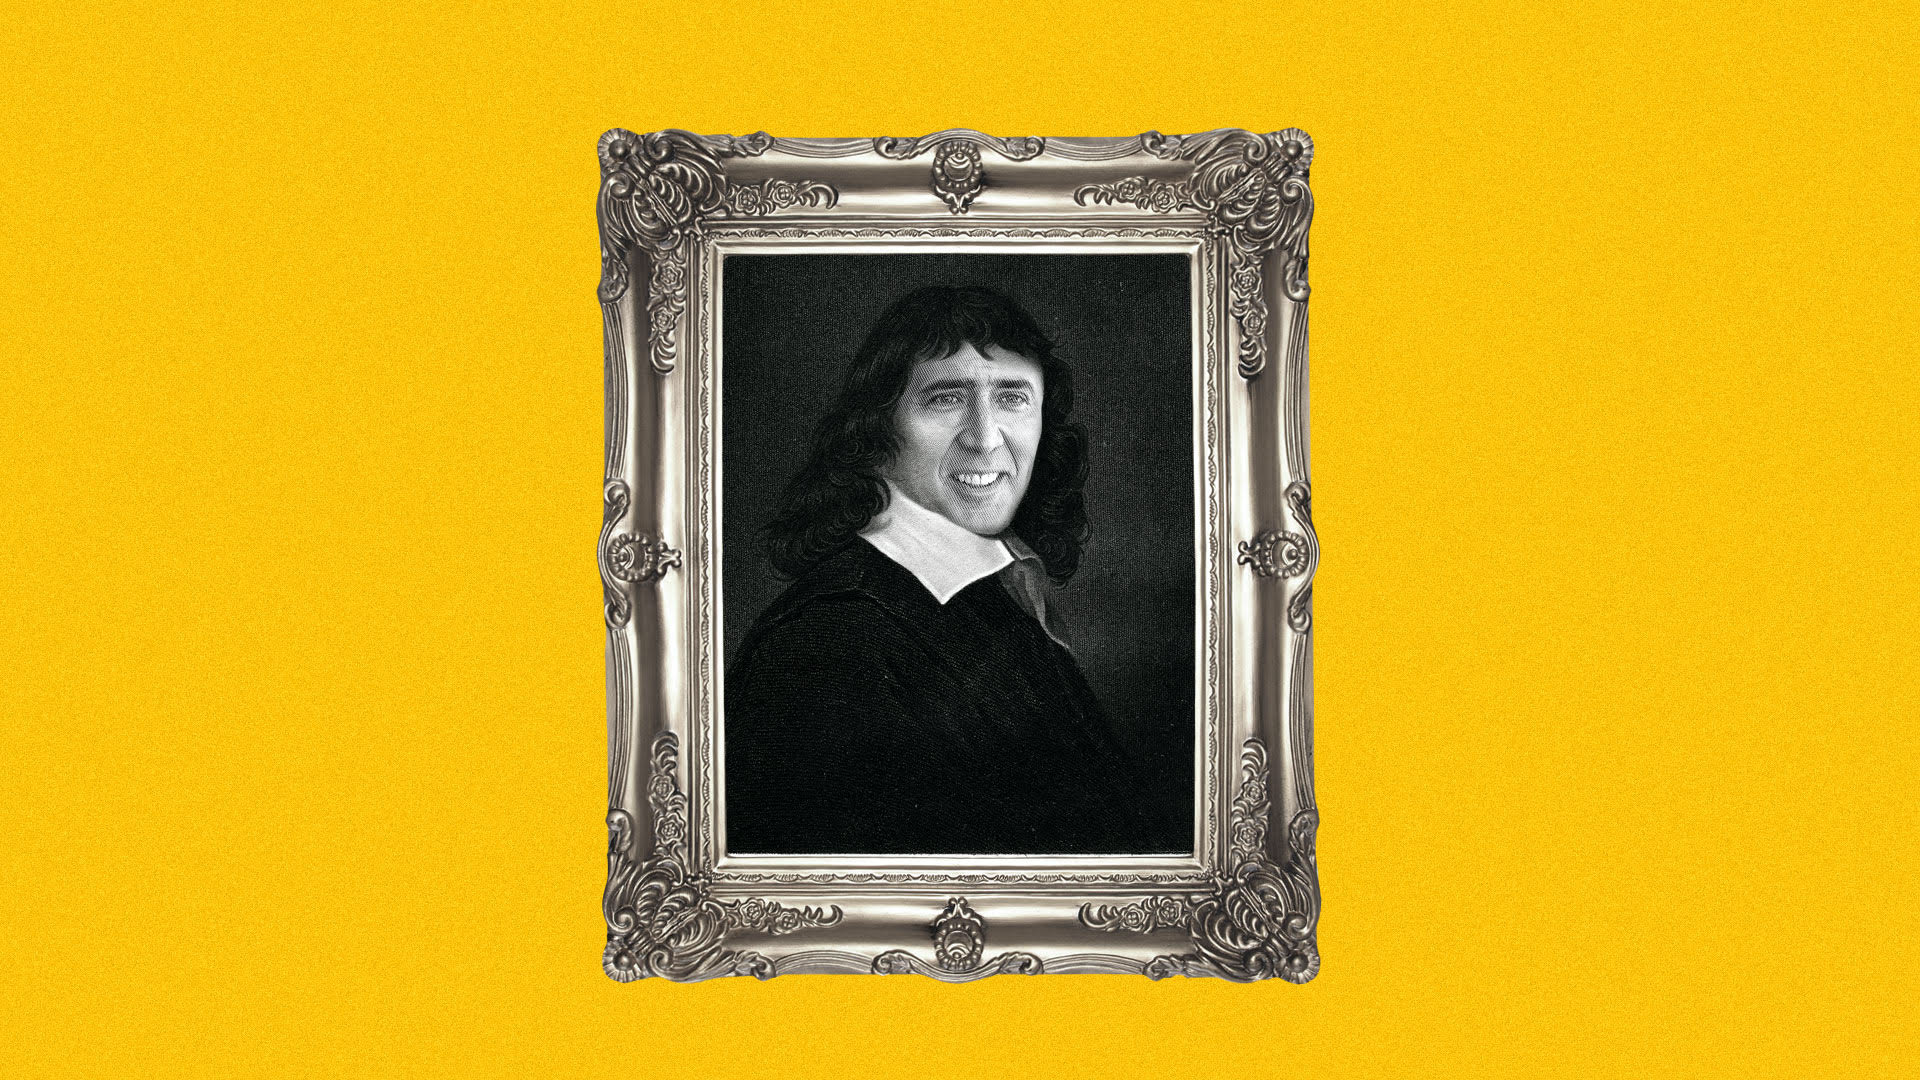 Illustration of René Descartes with Nicholas Cage's face in an ornate frame.